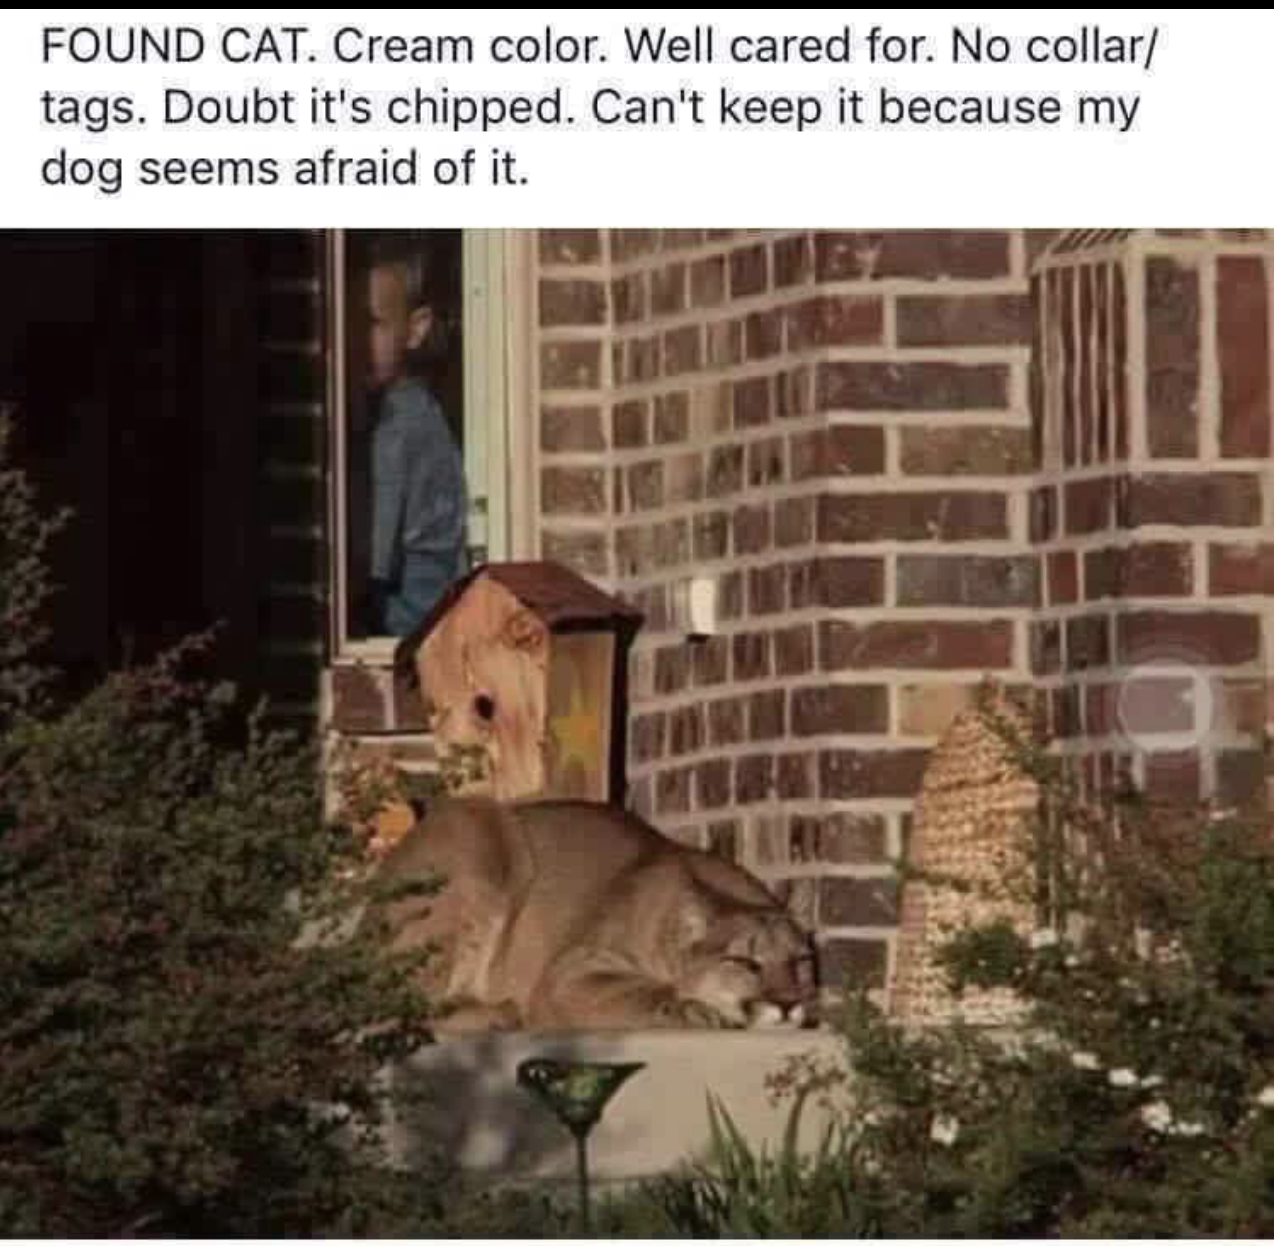 3 - Funny meme about cat for adoption but looks more like some kind of mountain lion.